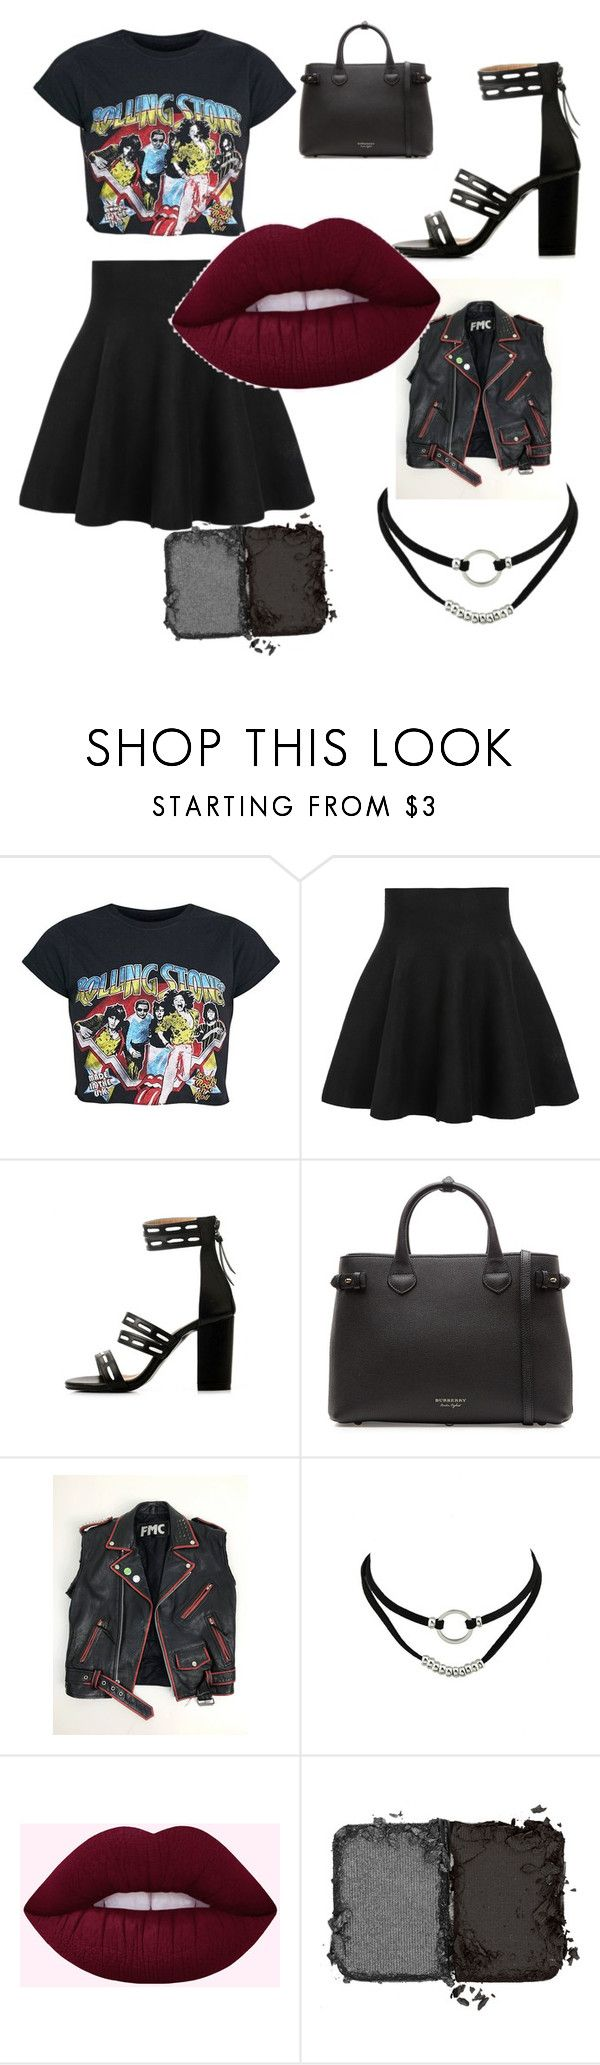 """""""Punk Chic"""" by wilbells ❤ liked on Polyvore featuring WithChic, Burberry and NARS Cosmetics"""